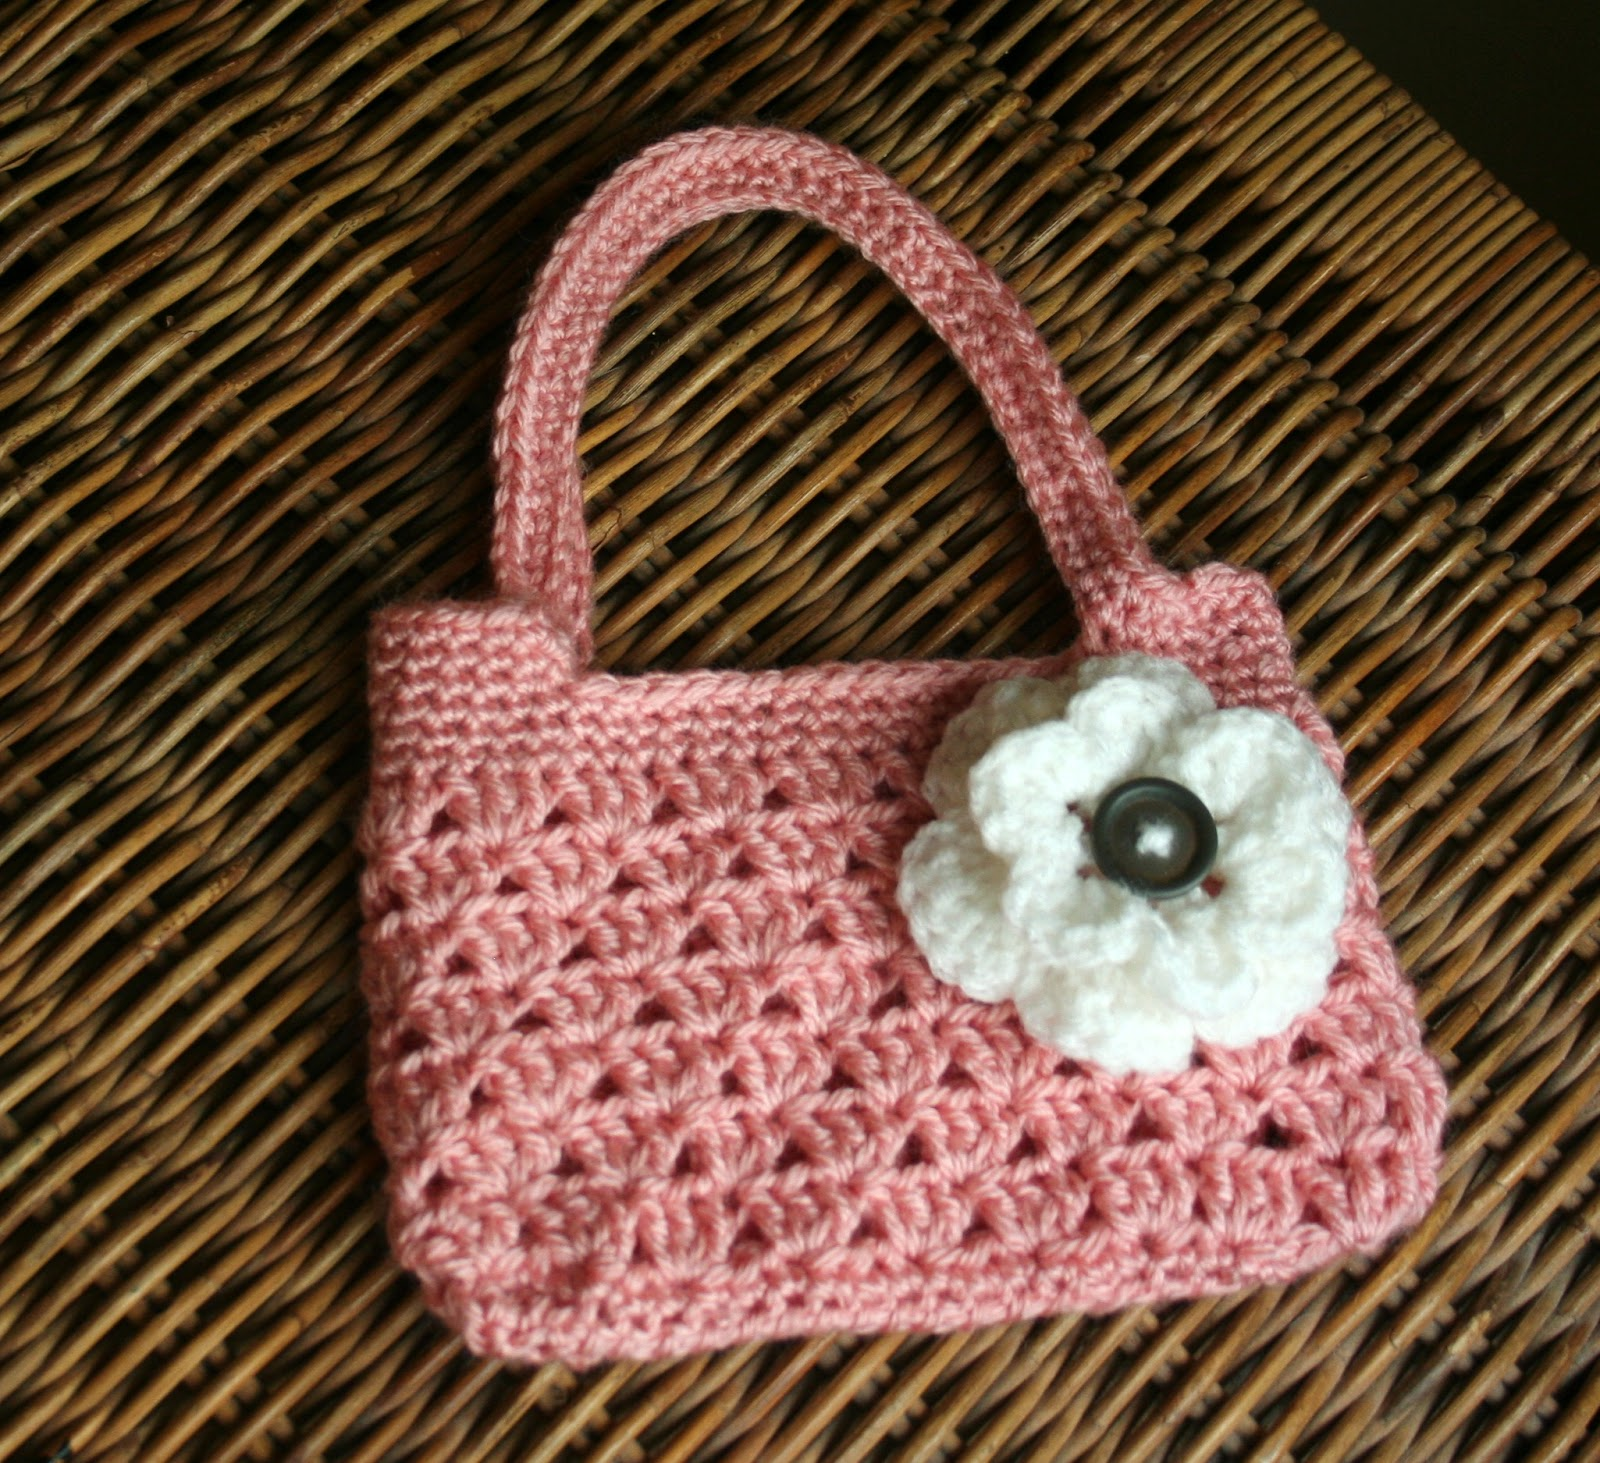 Free Crochet Purse Patterns For Kids : FREE CROCHET PATTERNS FOR PURSES Crochet Tutorials